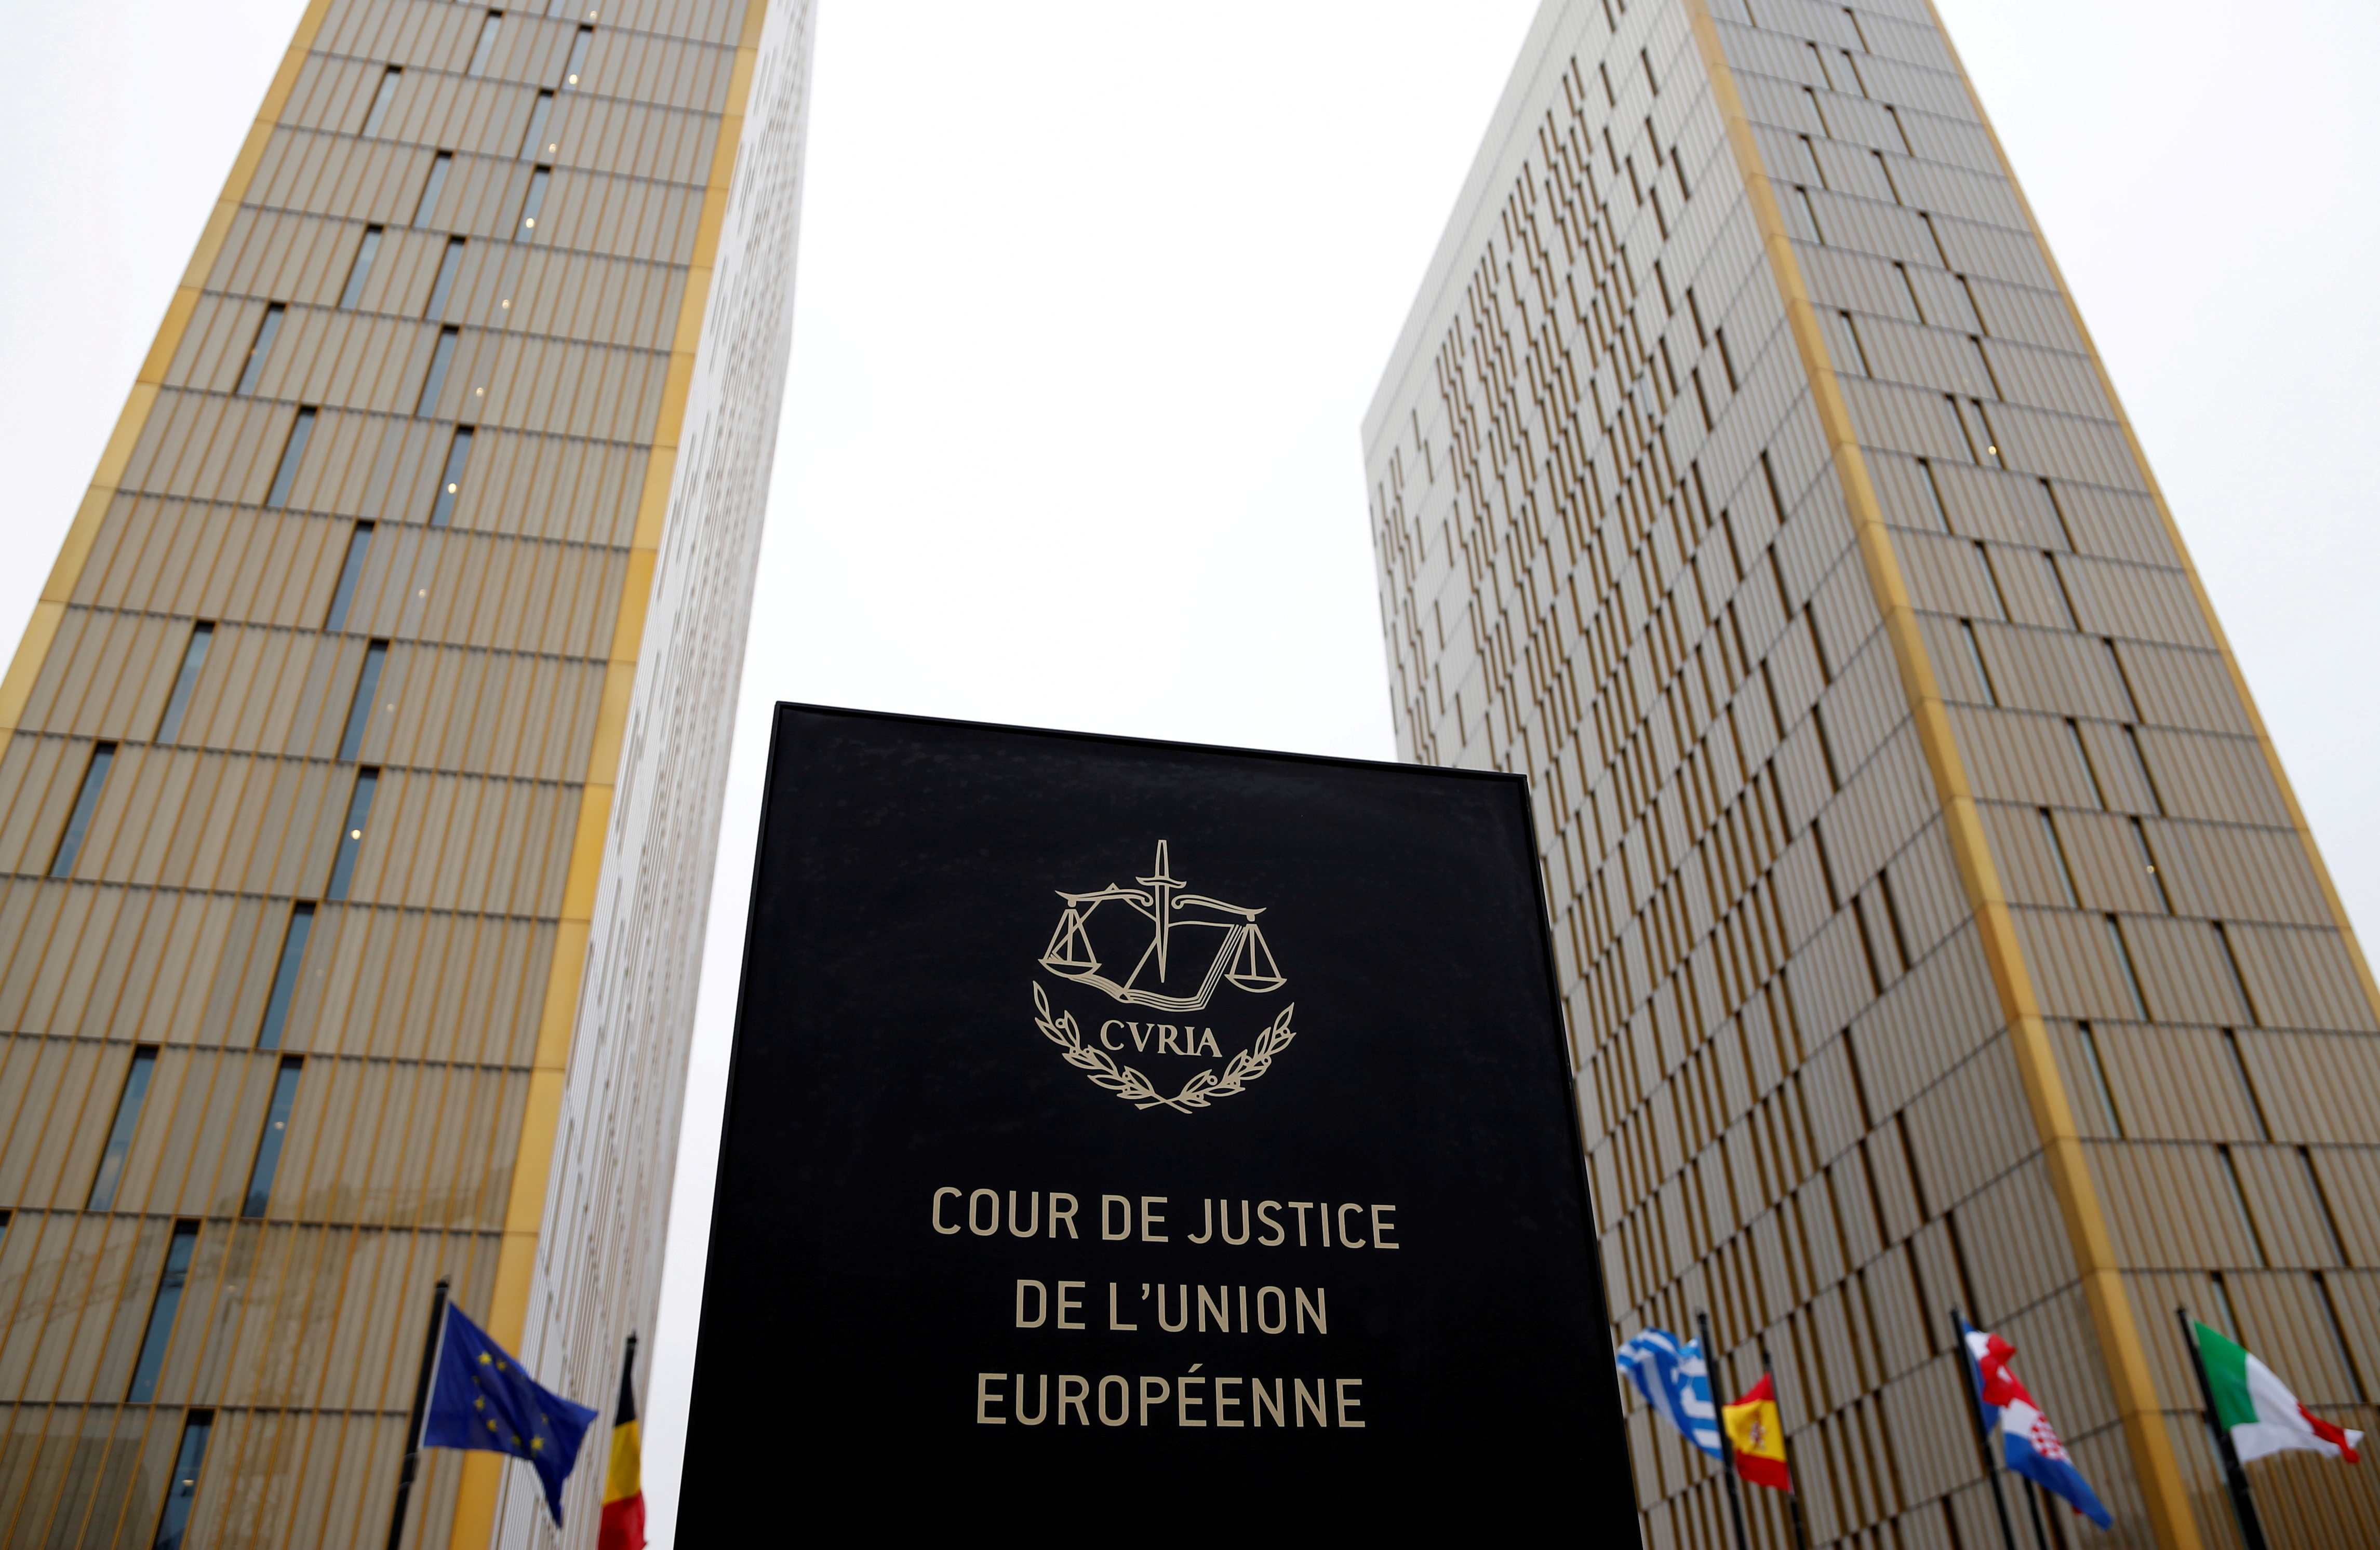 The towers of the Court of Justice of the European Union are seen in Luxembourg, January 26, 2017. Picture taken January 26, 2017. REUTERS/Francois Lenoir/File Photo